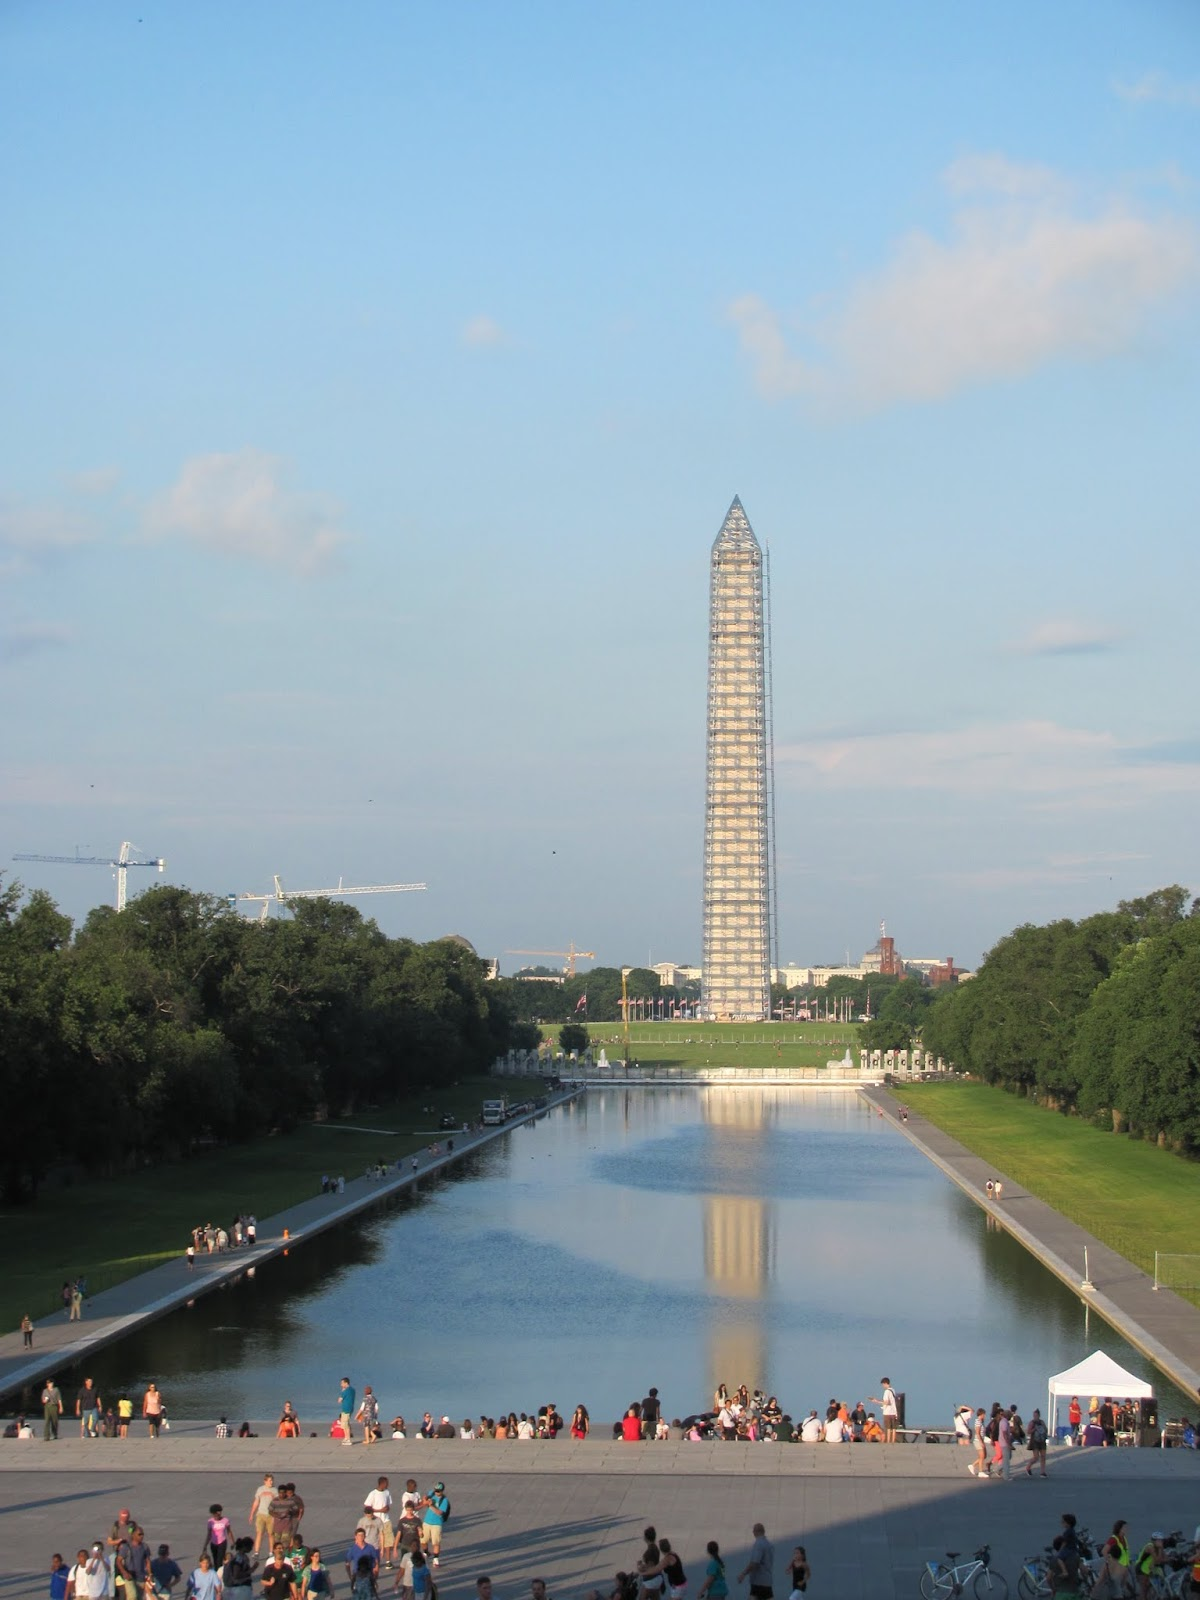 Washington Monument seen reflecting on the reflecting pool in Washington, DC